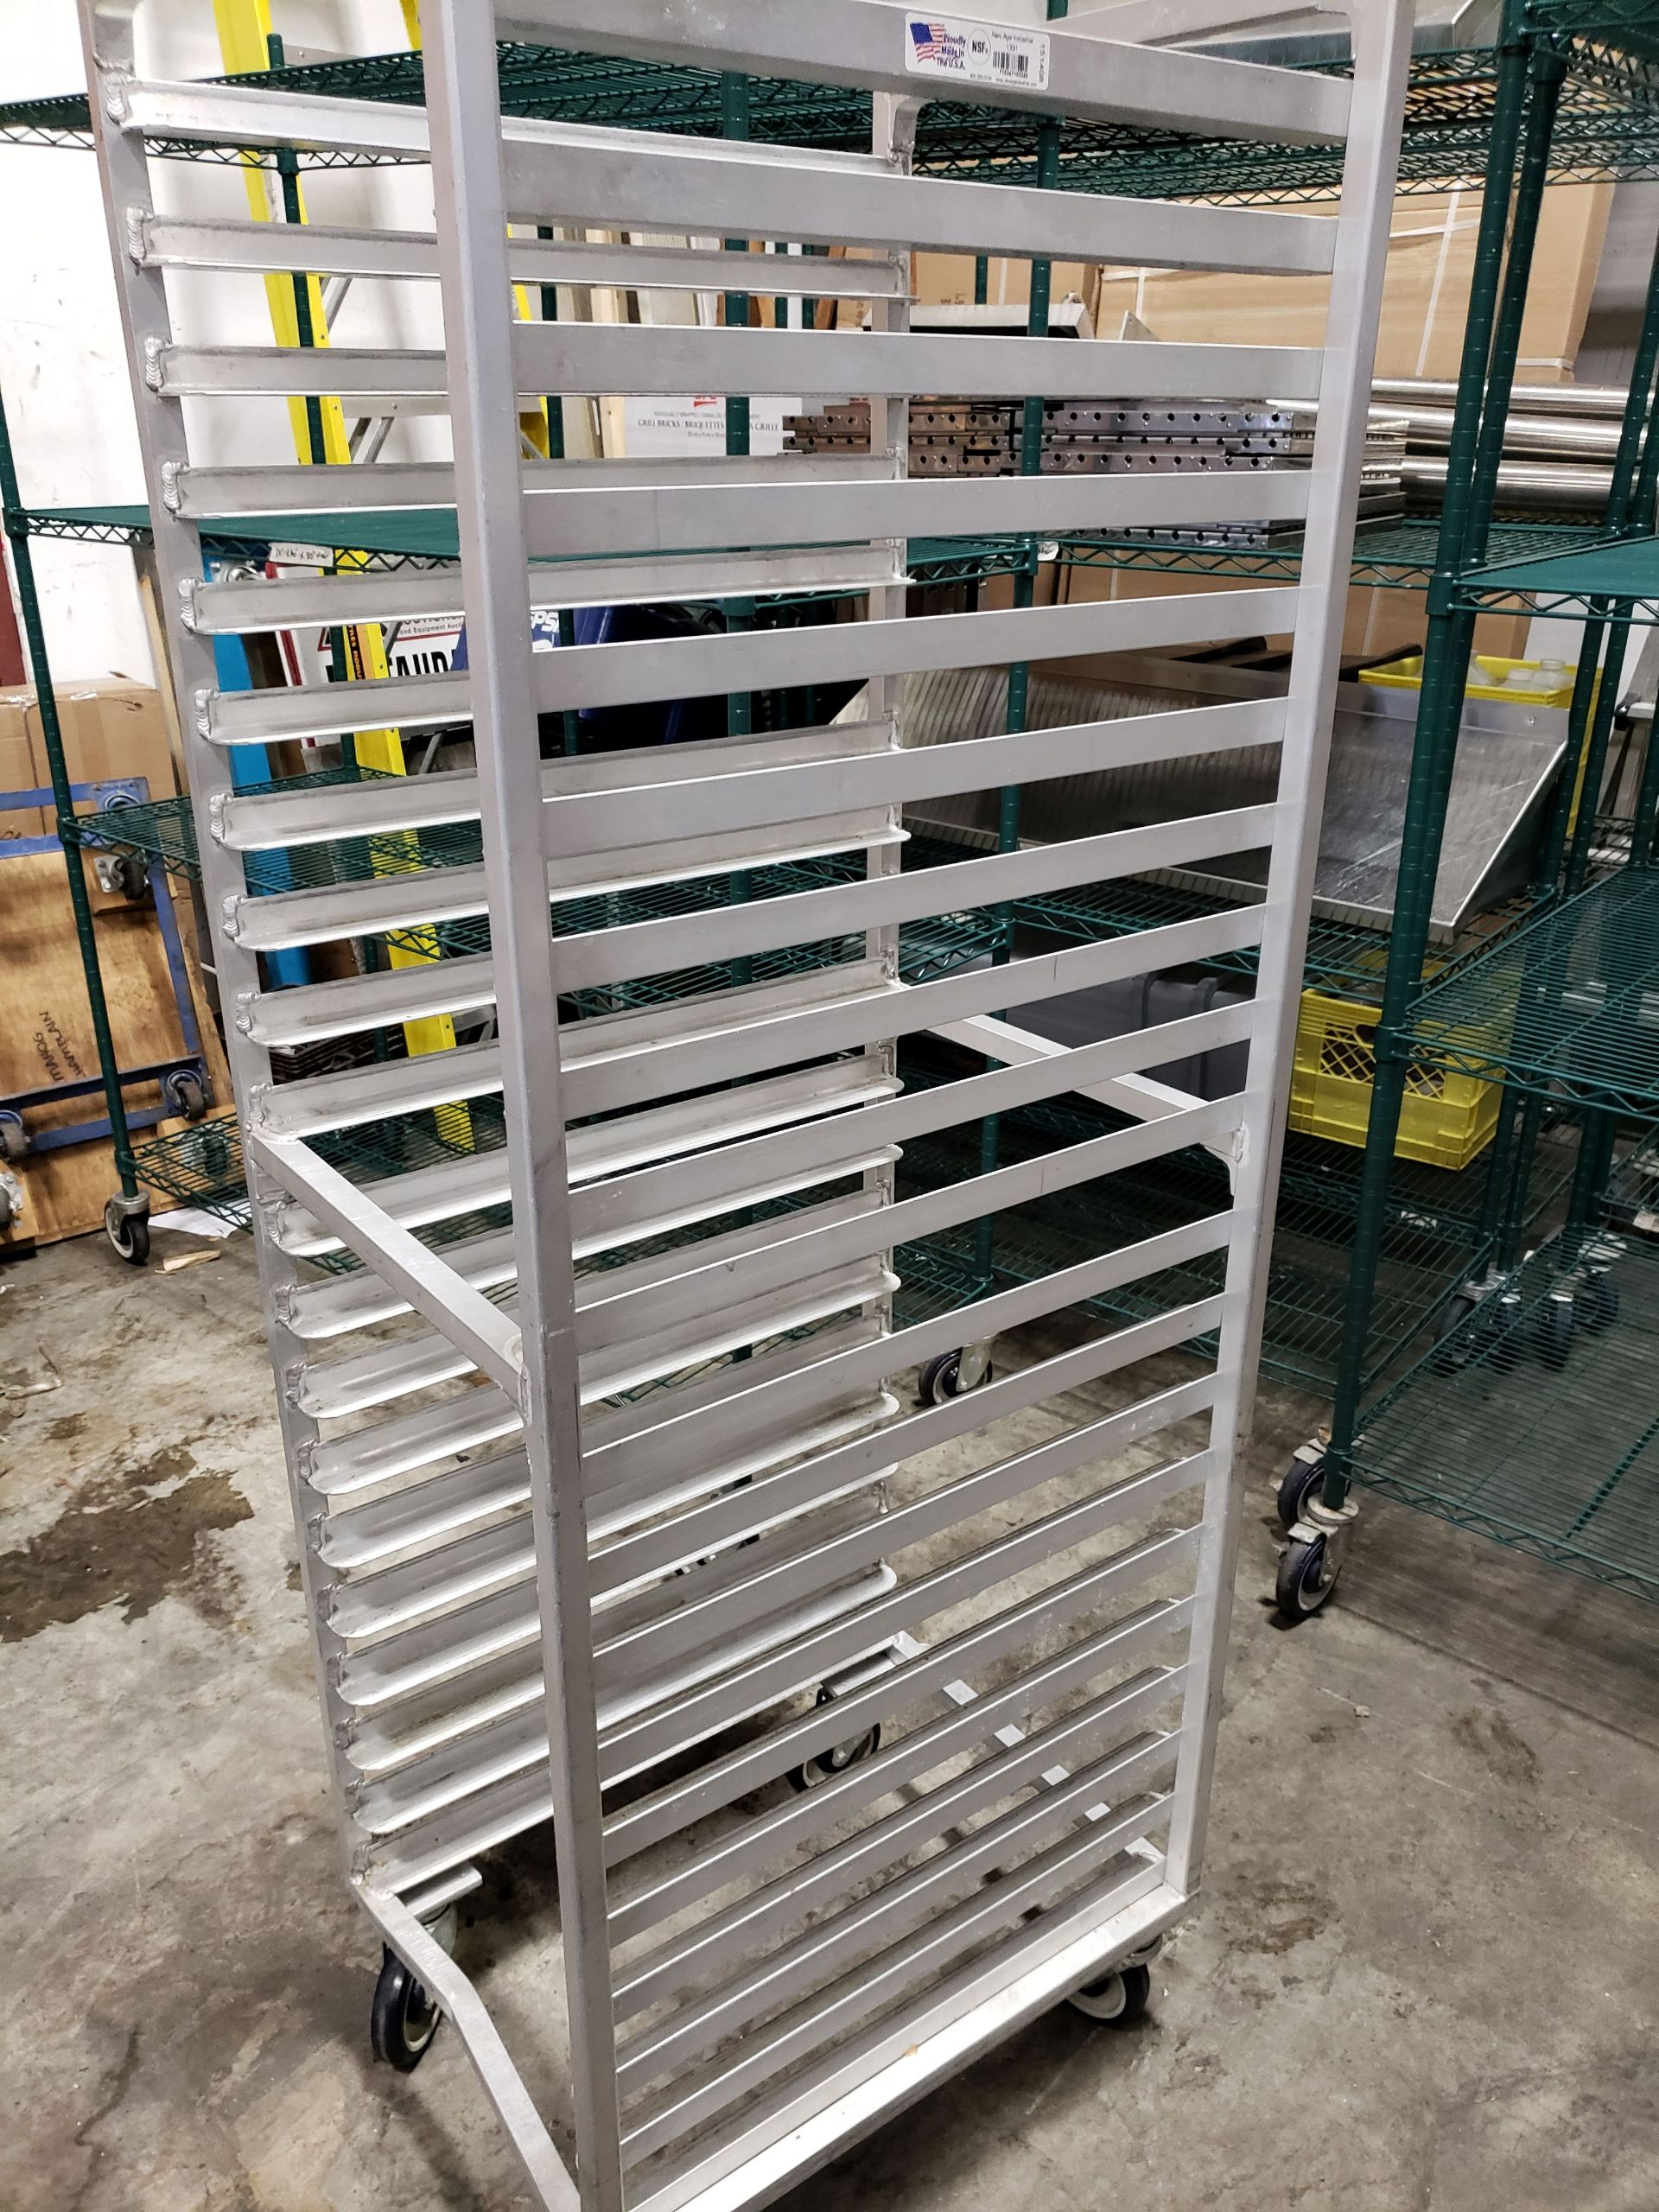 Lot 31 - Aluminum 20 Pan Sheet Pan Rack on Casters - New Age Industries